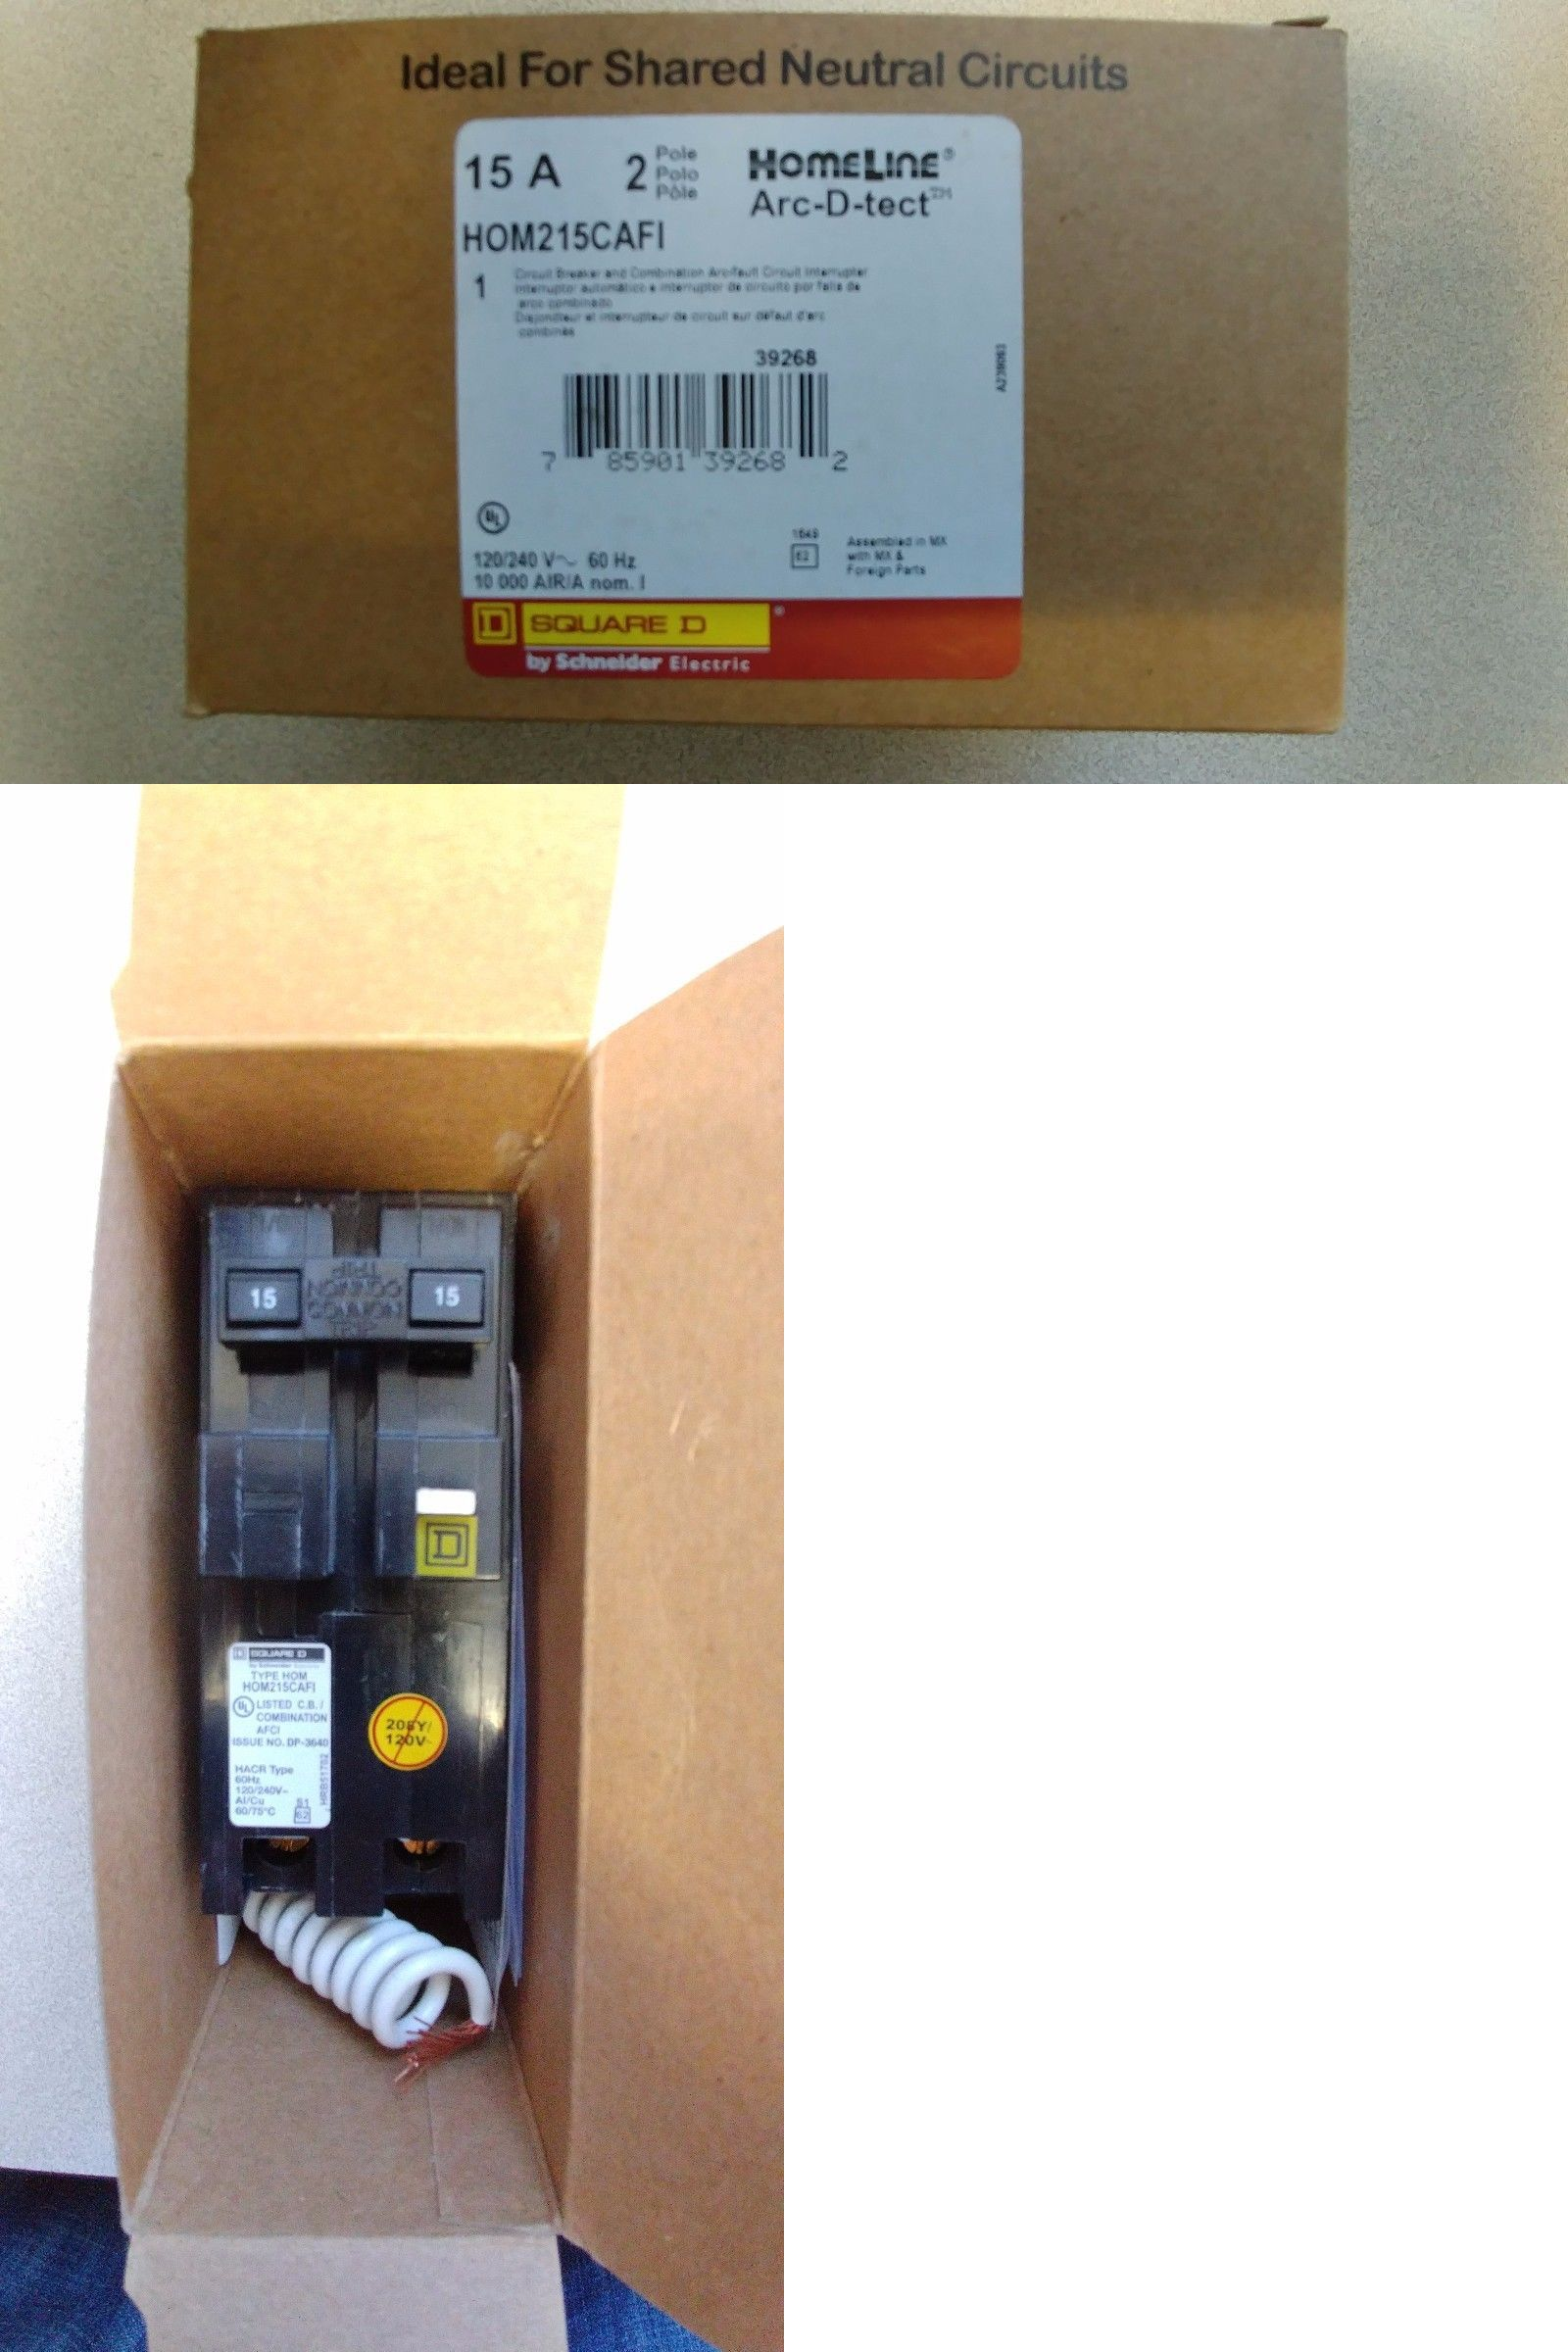 Circuit Breakers And Fuse Boxes 20596 New Square D Hom215cafi Or Afci Breaker Box Including Ge Hom220cafi 2 Pole Arc